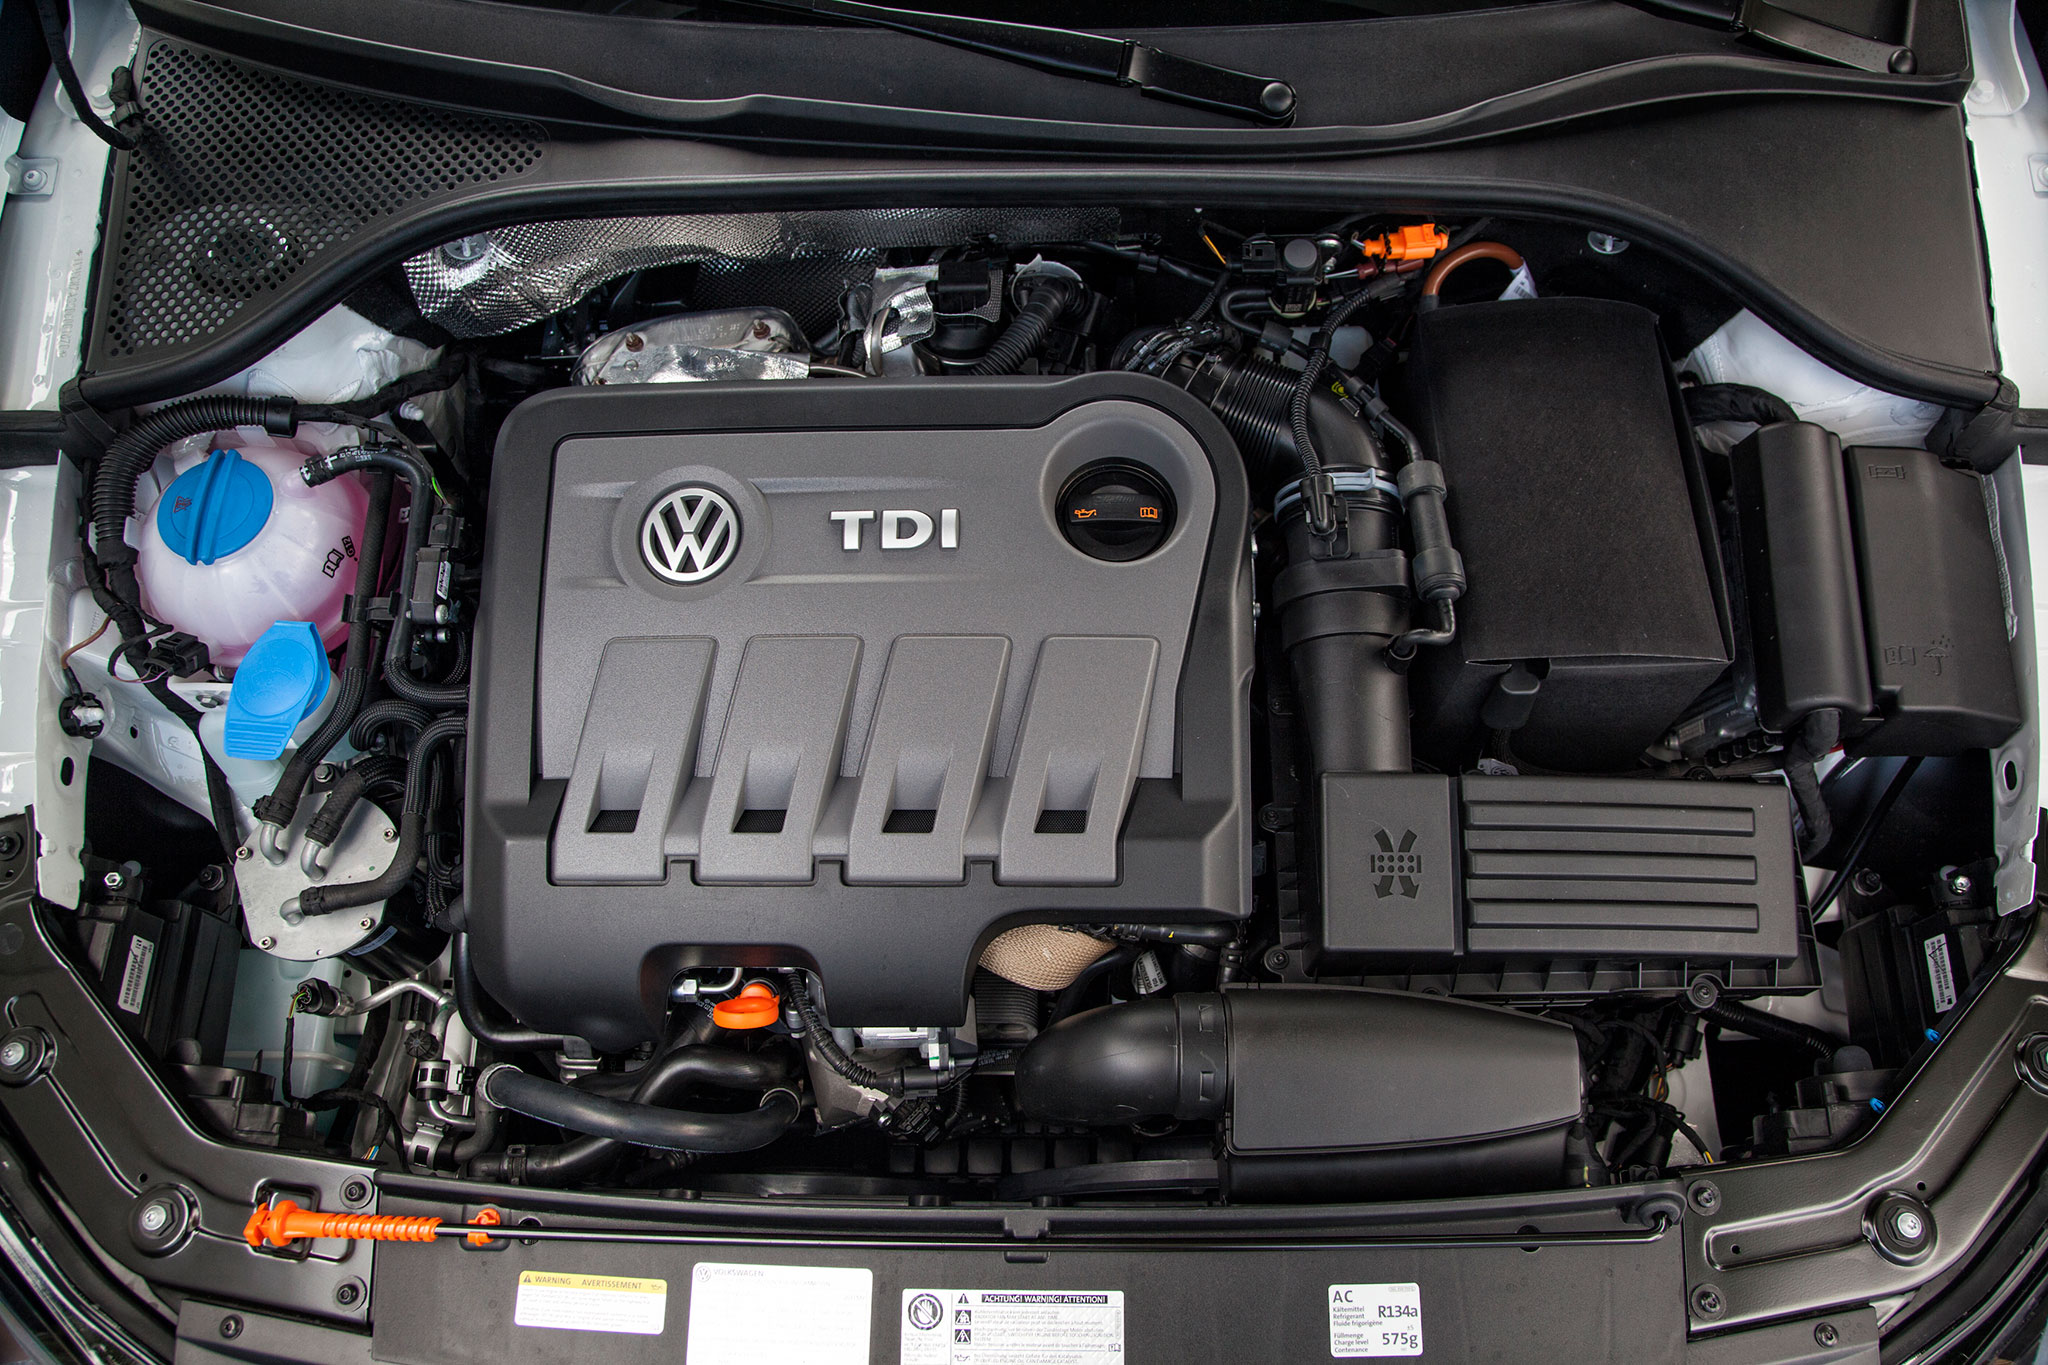 2013 Passat Engine Diagram Books Of Wiring 1 8t 2014 Volkswagen Sport Around The Block Automobile Rh Automobilemag Com